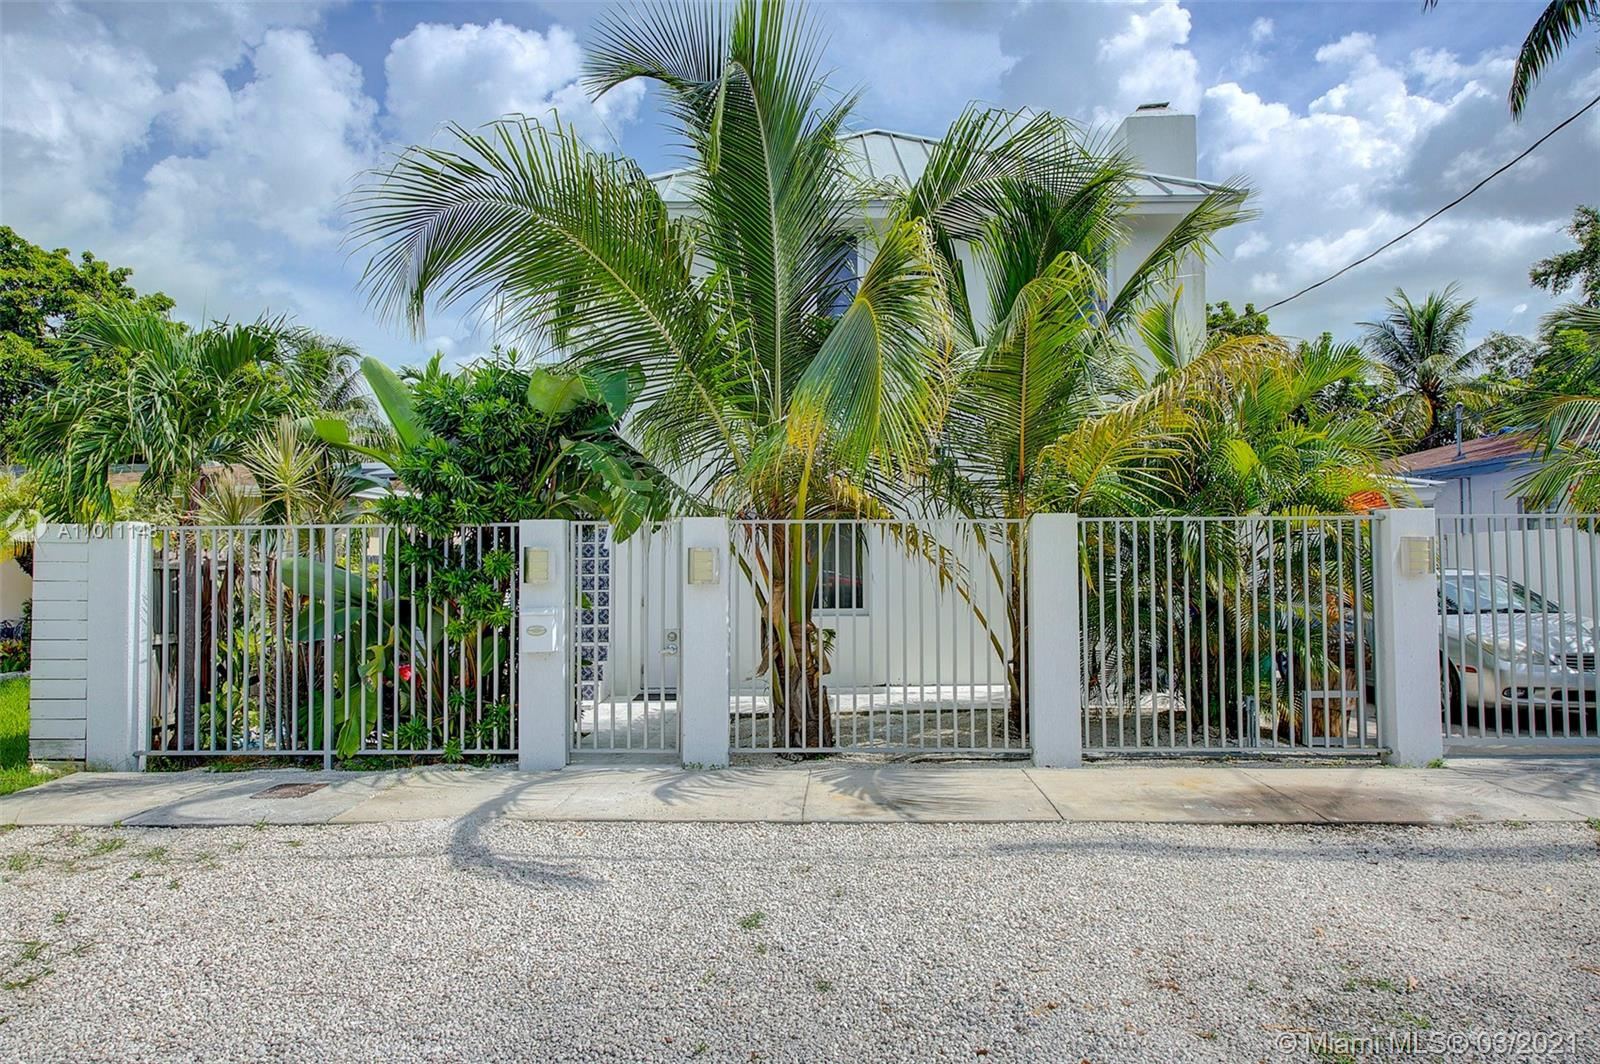 Frow Homestead - 3427 Frow Ave, Miami, FL 33133